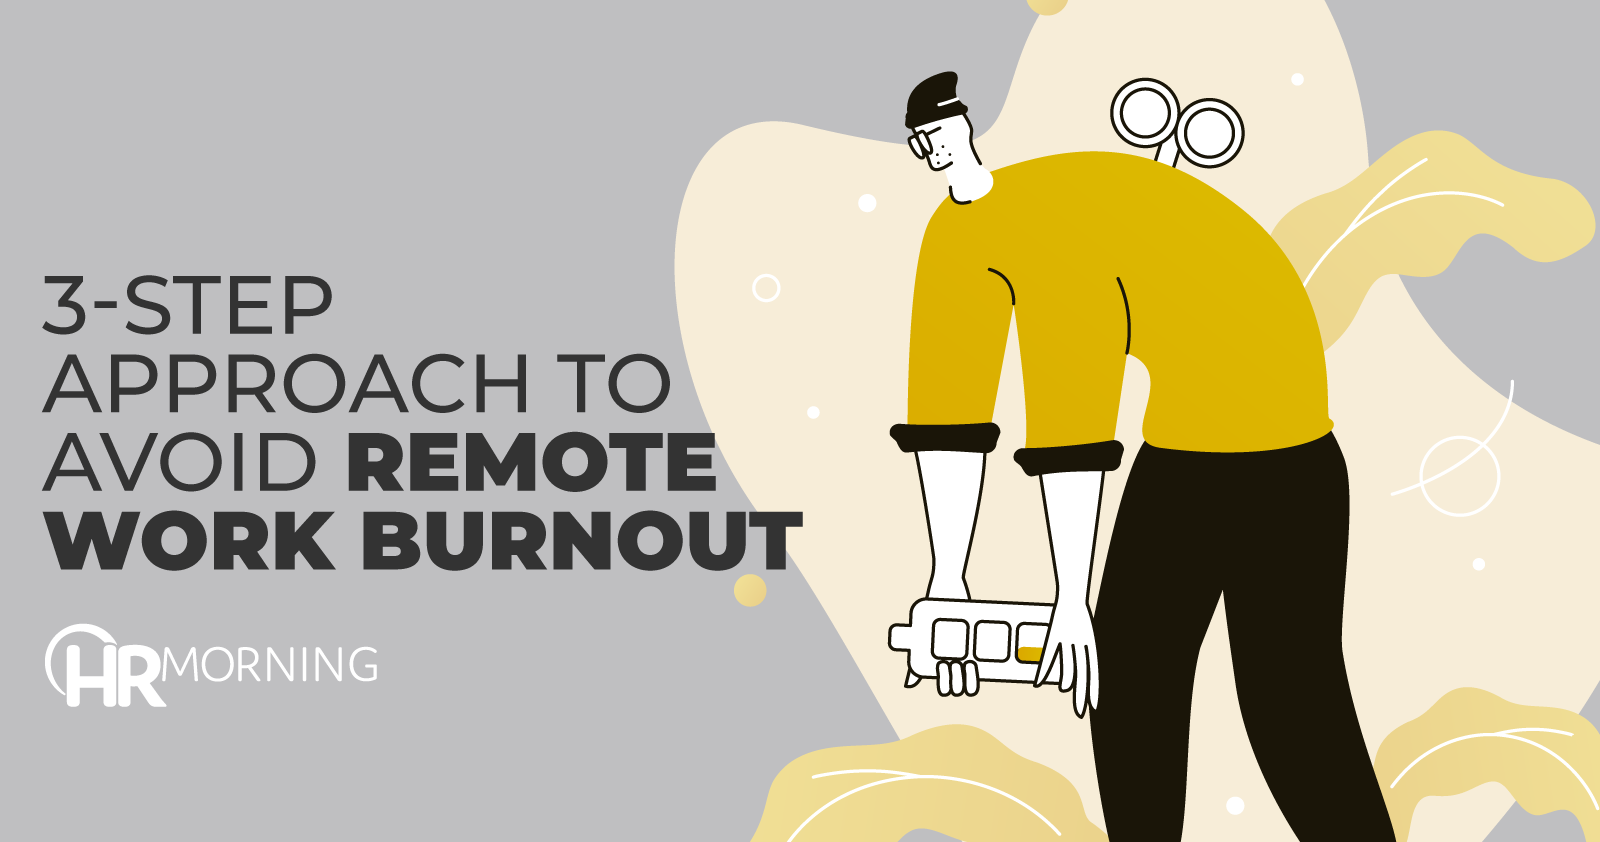 3 step approach to avoid remote work burnout